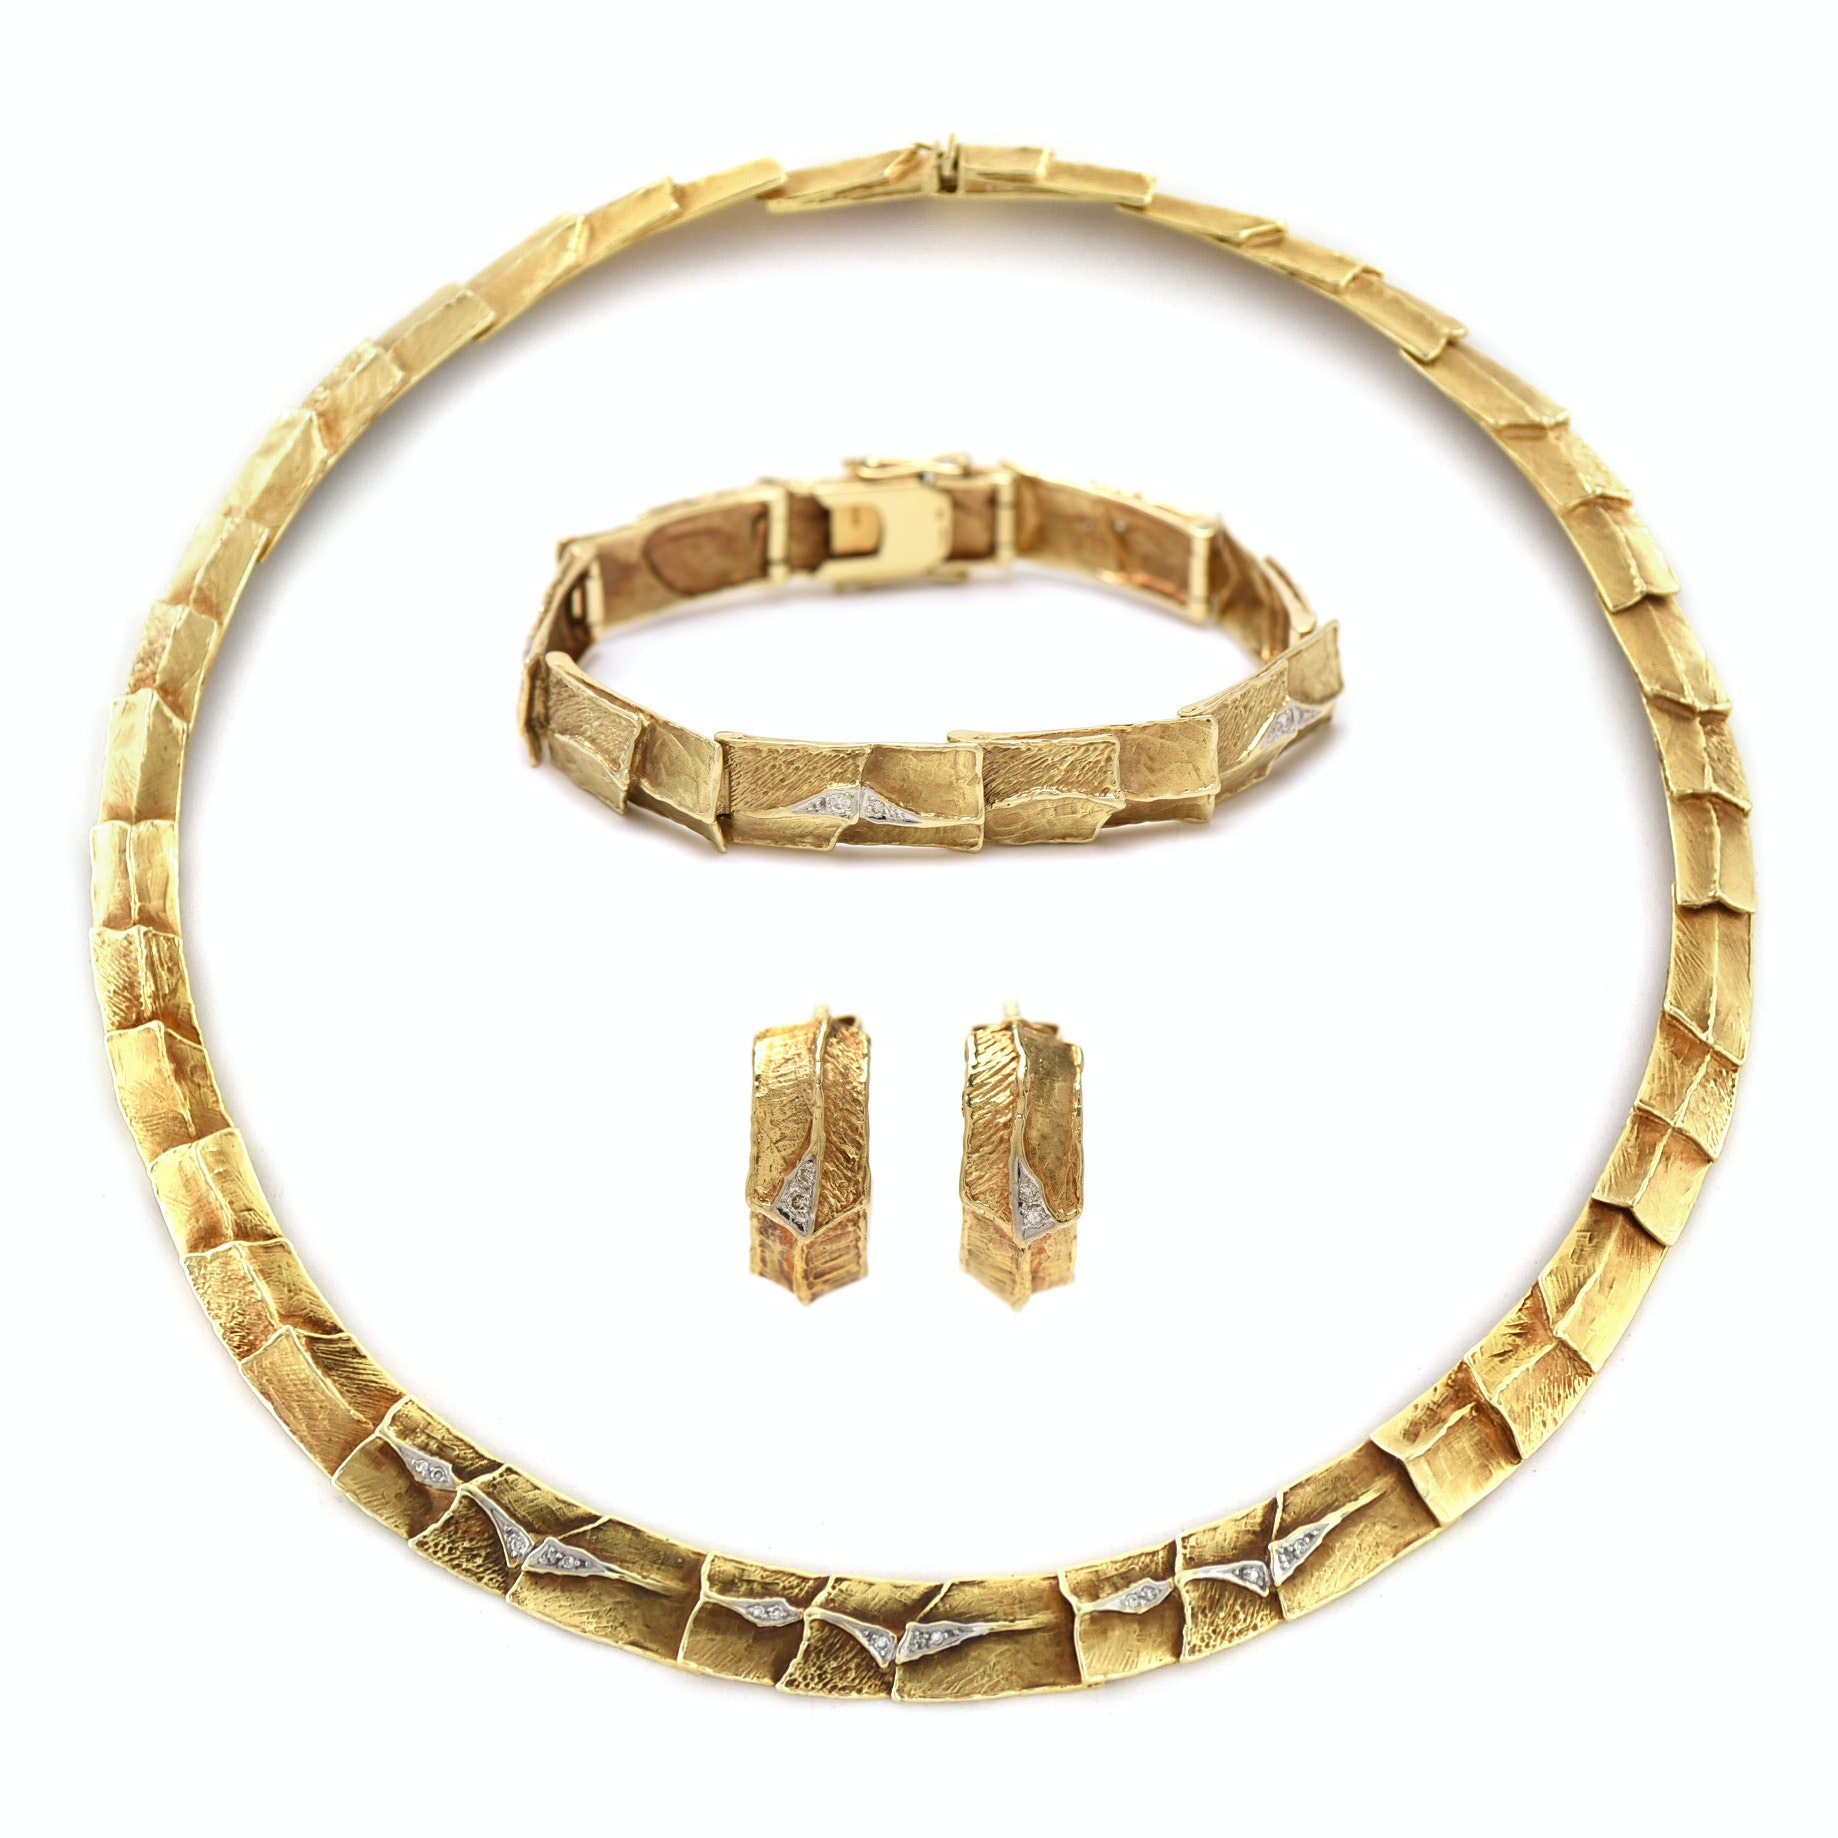 Vintage 14K Yellow Gold Diamond Necklace, Bracelet, and Earring Parure Set